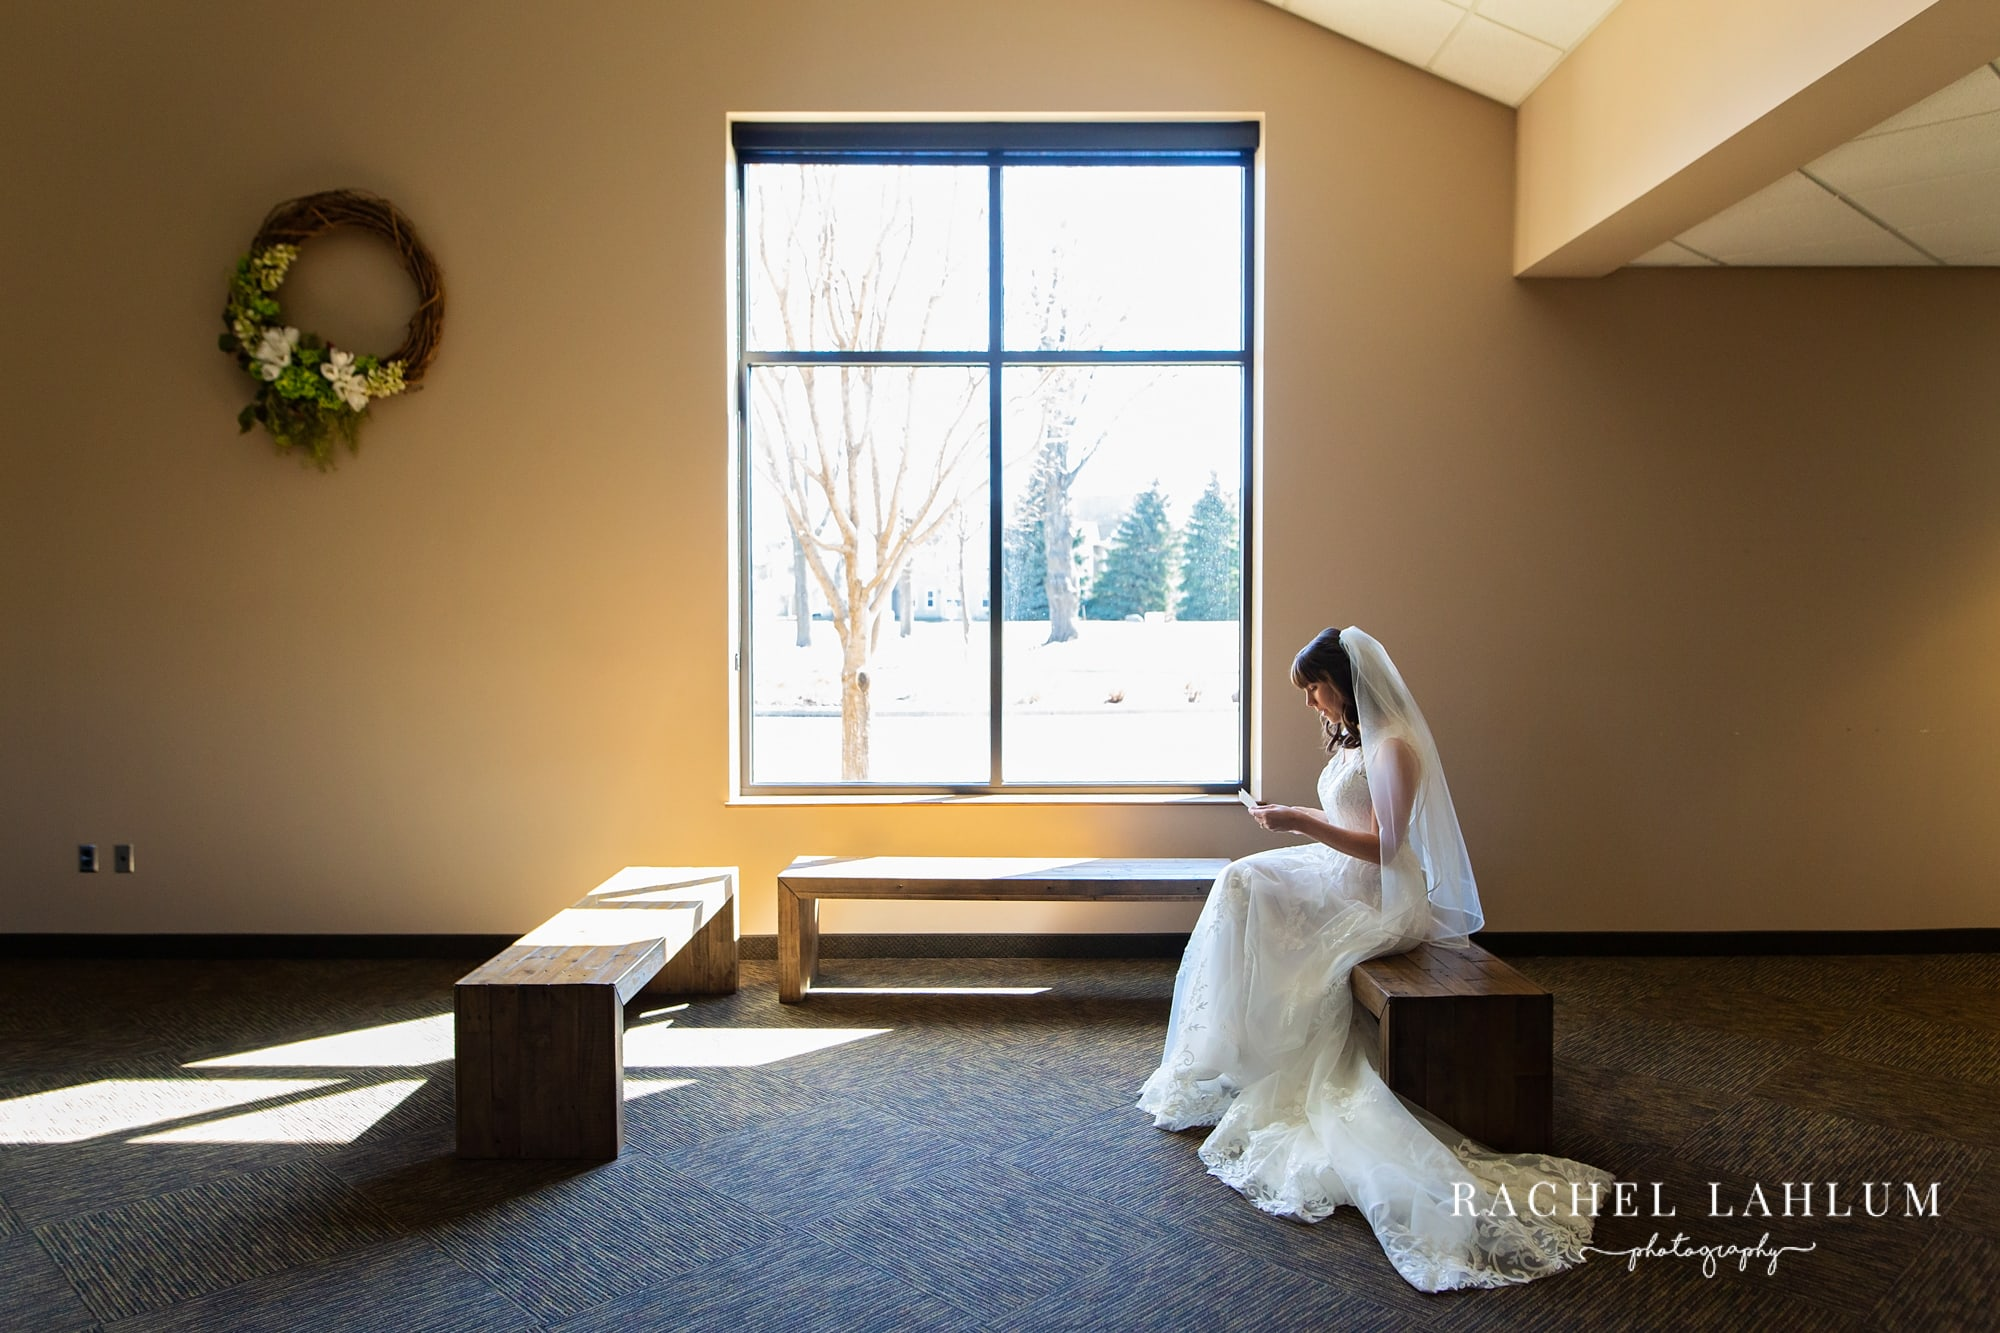 Bride reads letter from groom before wedding ceremony.